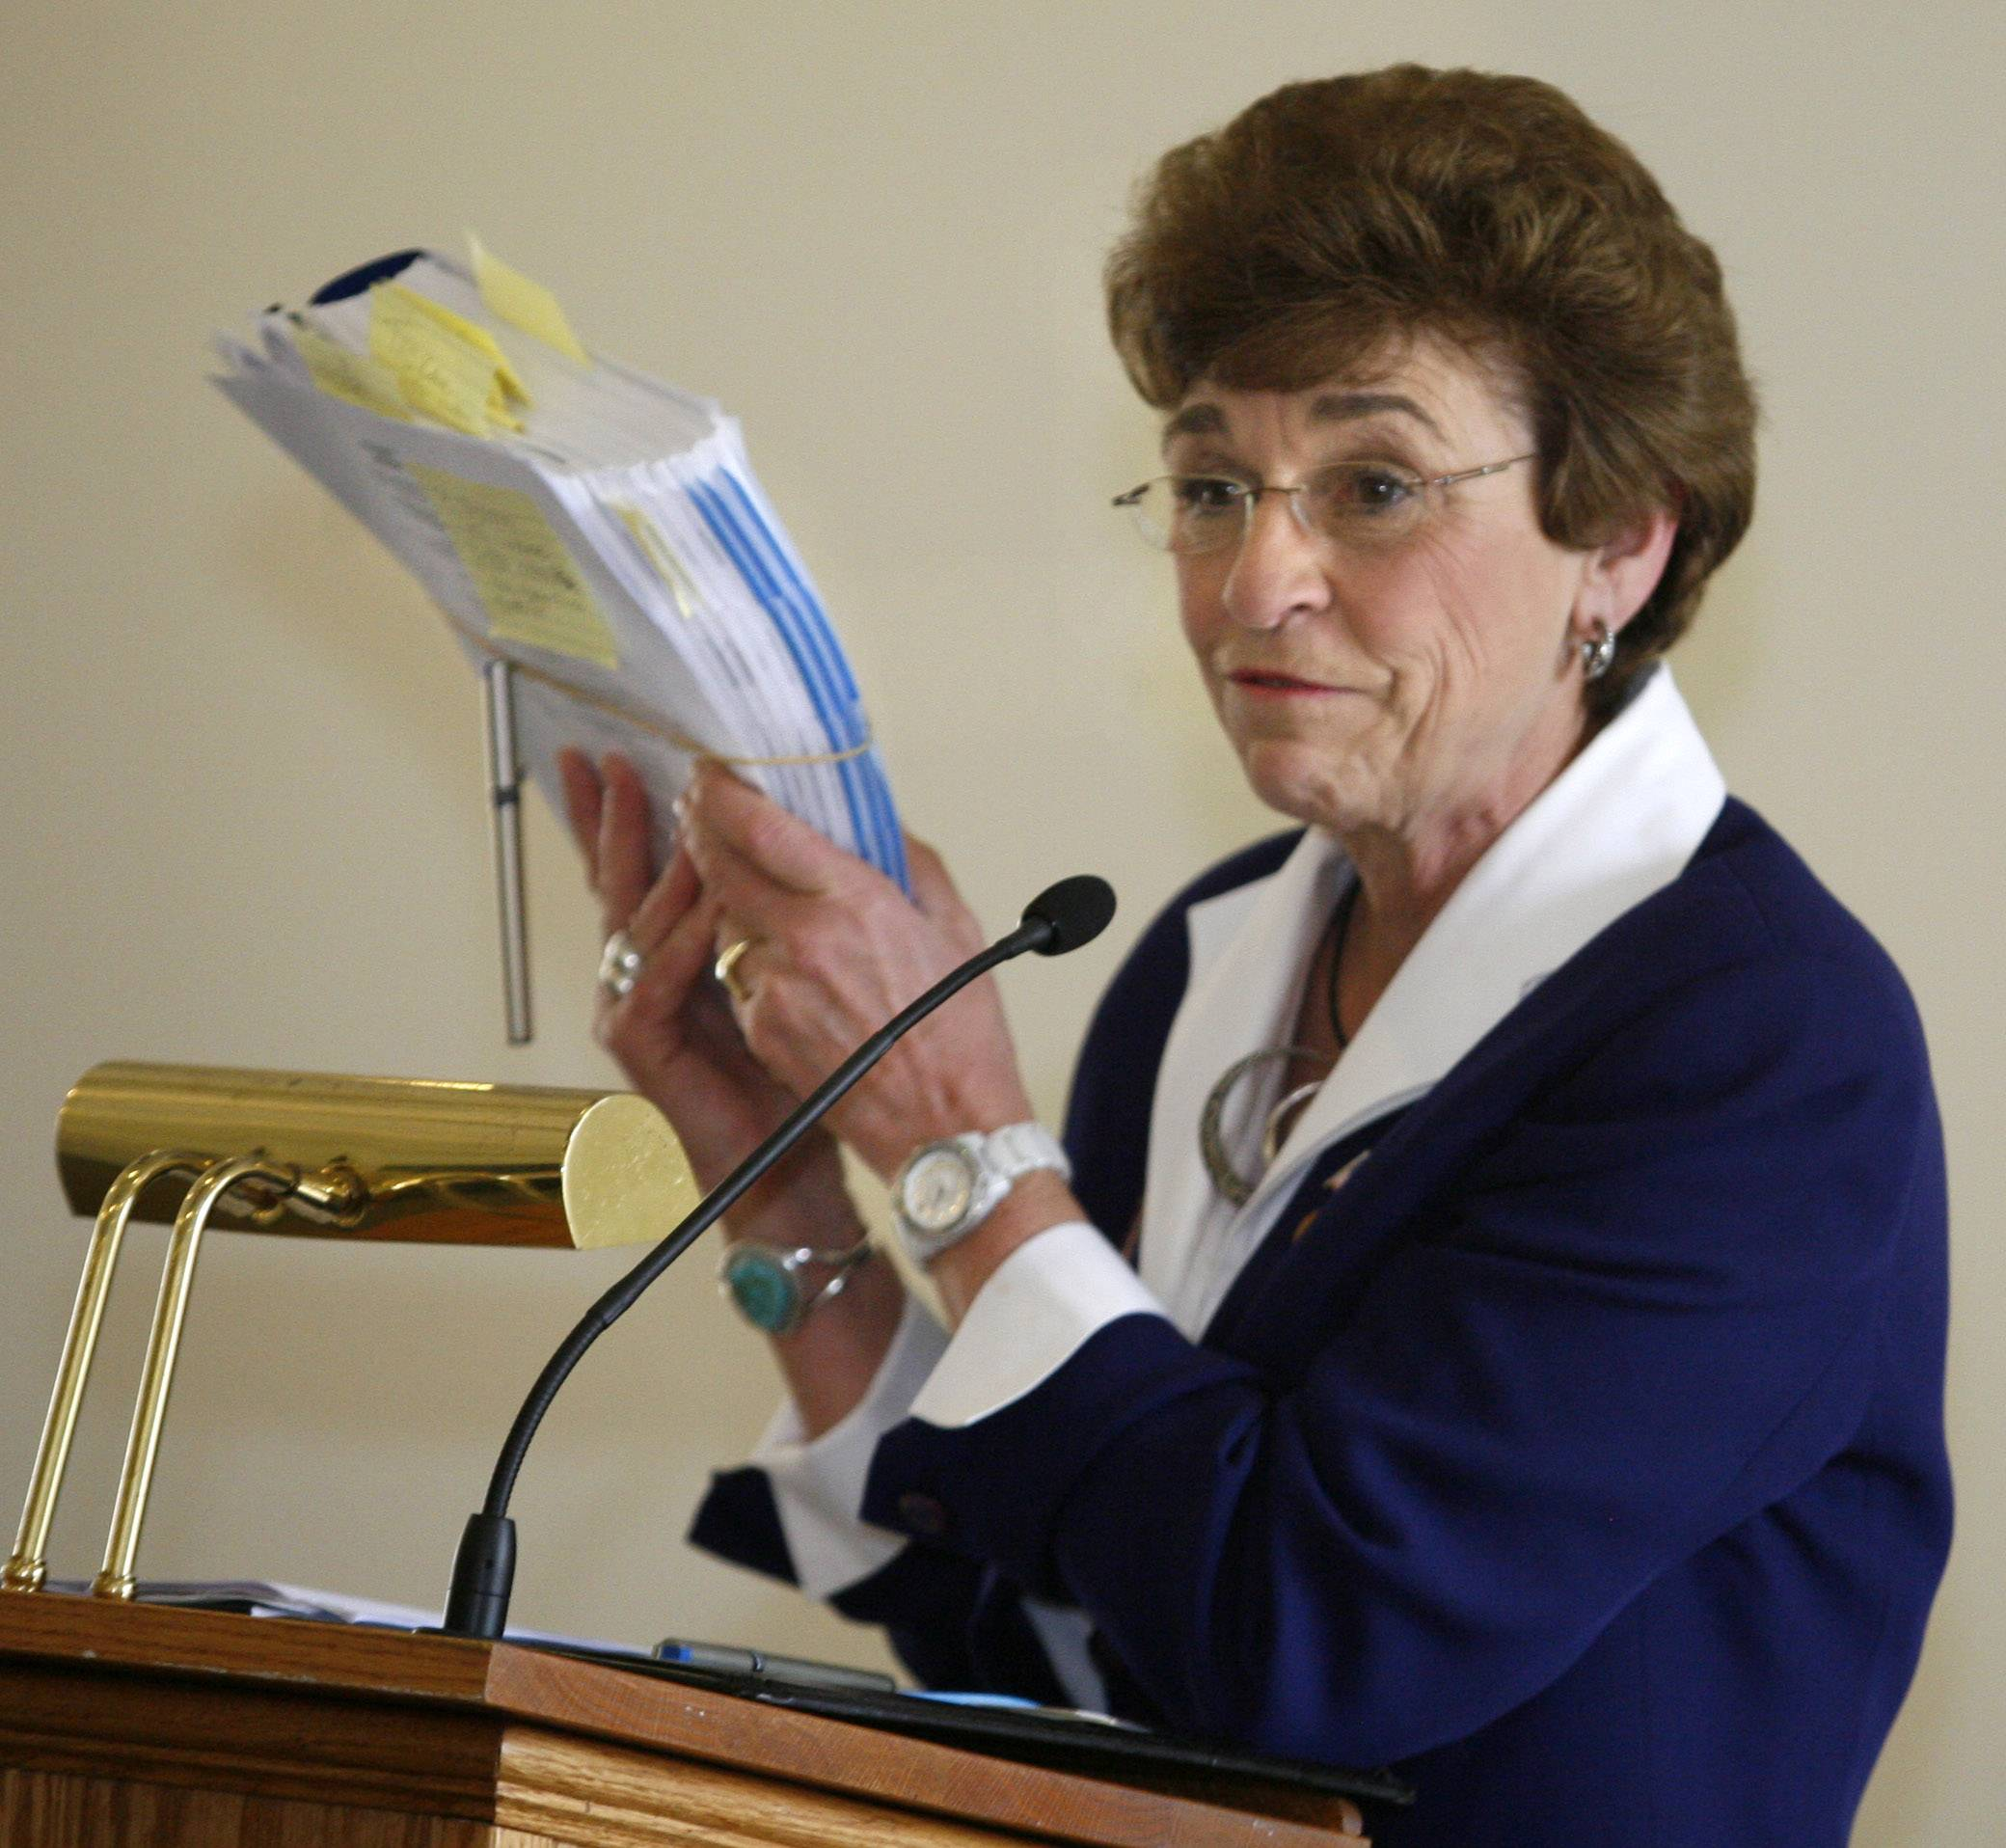 Arlington Heights Village President Arlene Mulder shows a copy of the village's budget for 2012 while delivering a state of the village address to residents at the Moorings in March. Mulder has announced she will not seek re-election when her term is up in 2013.